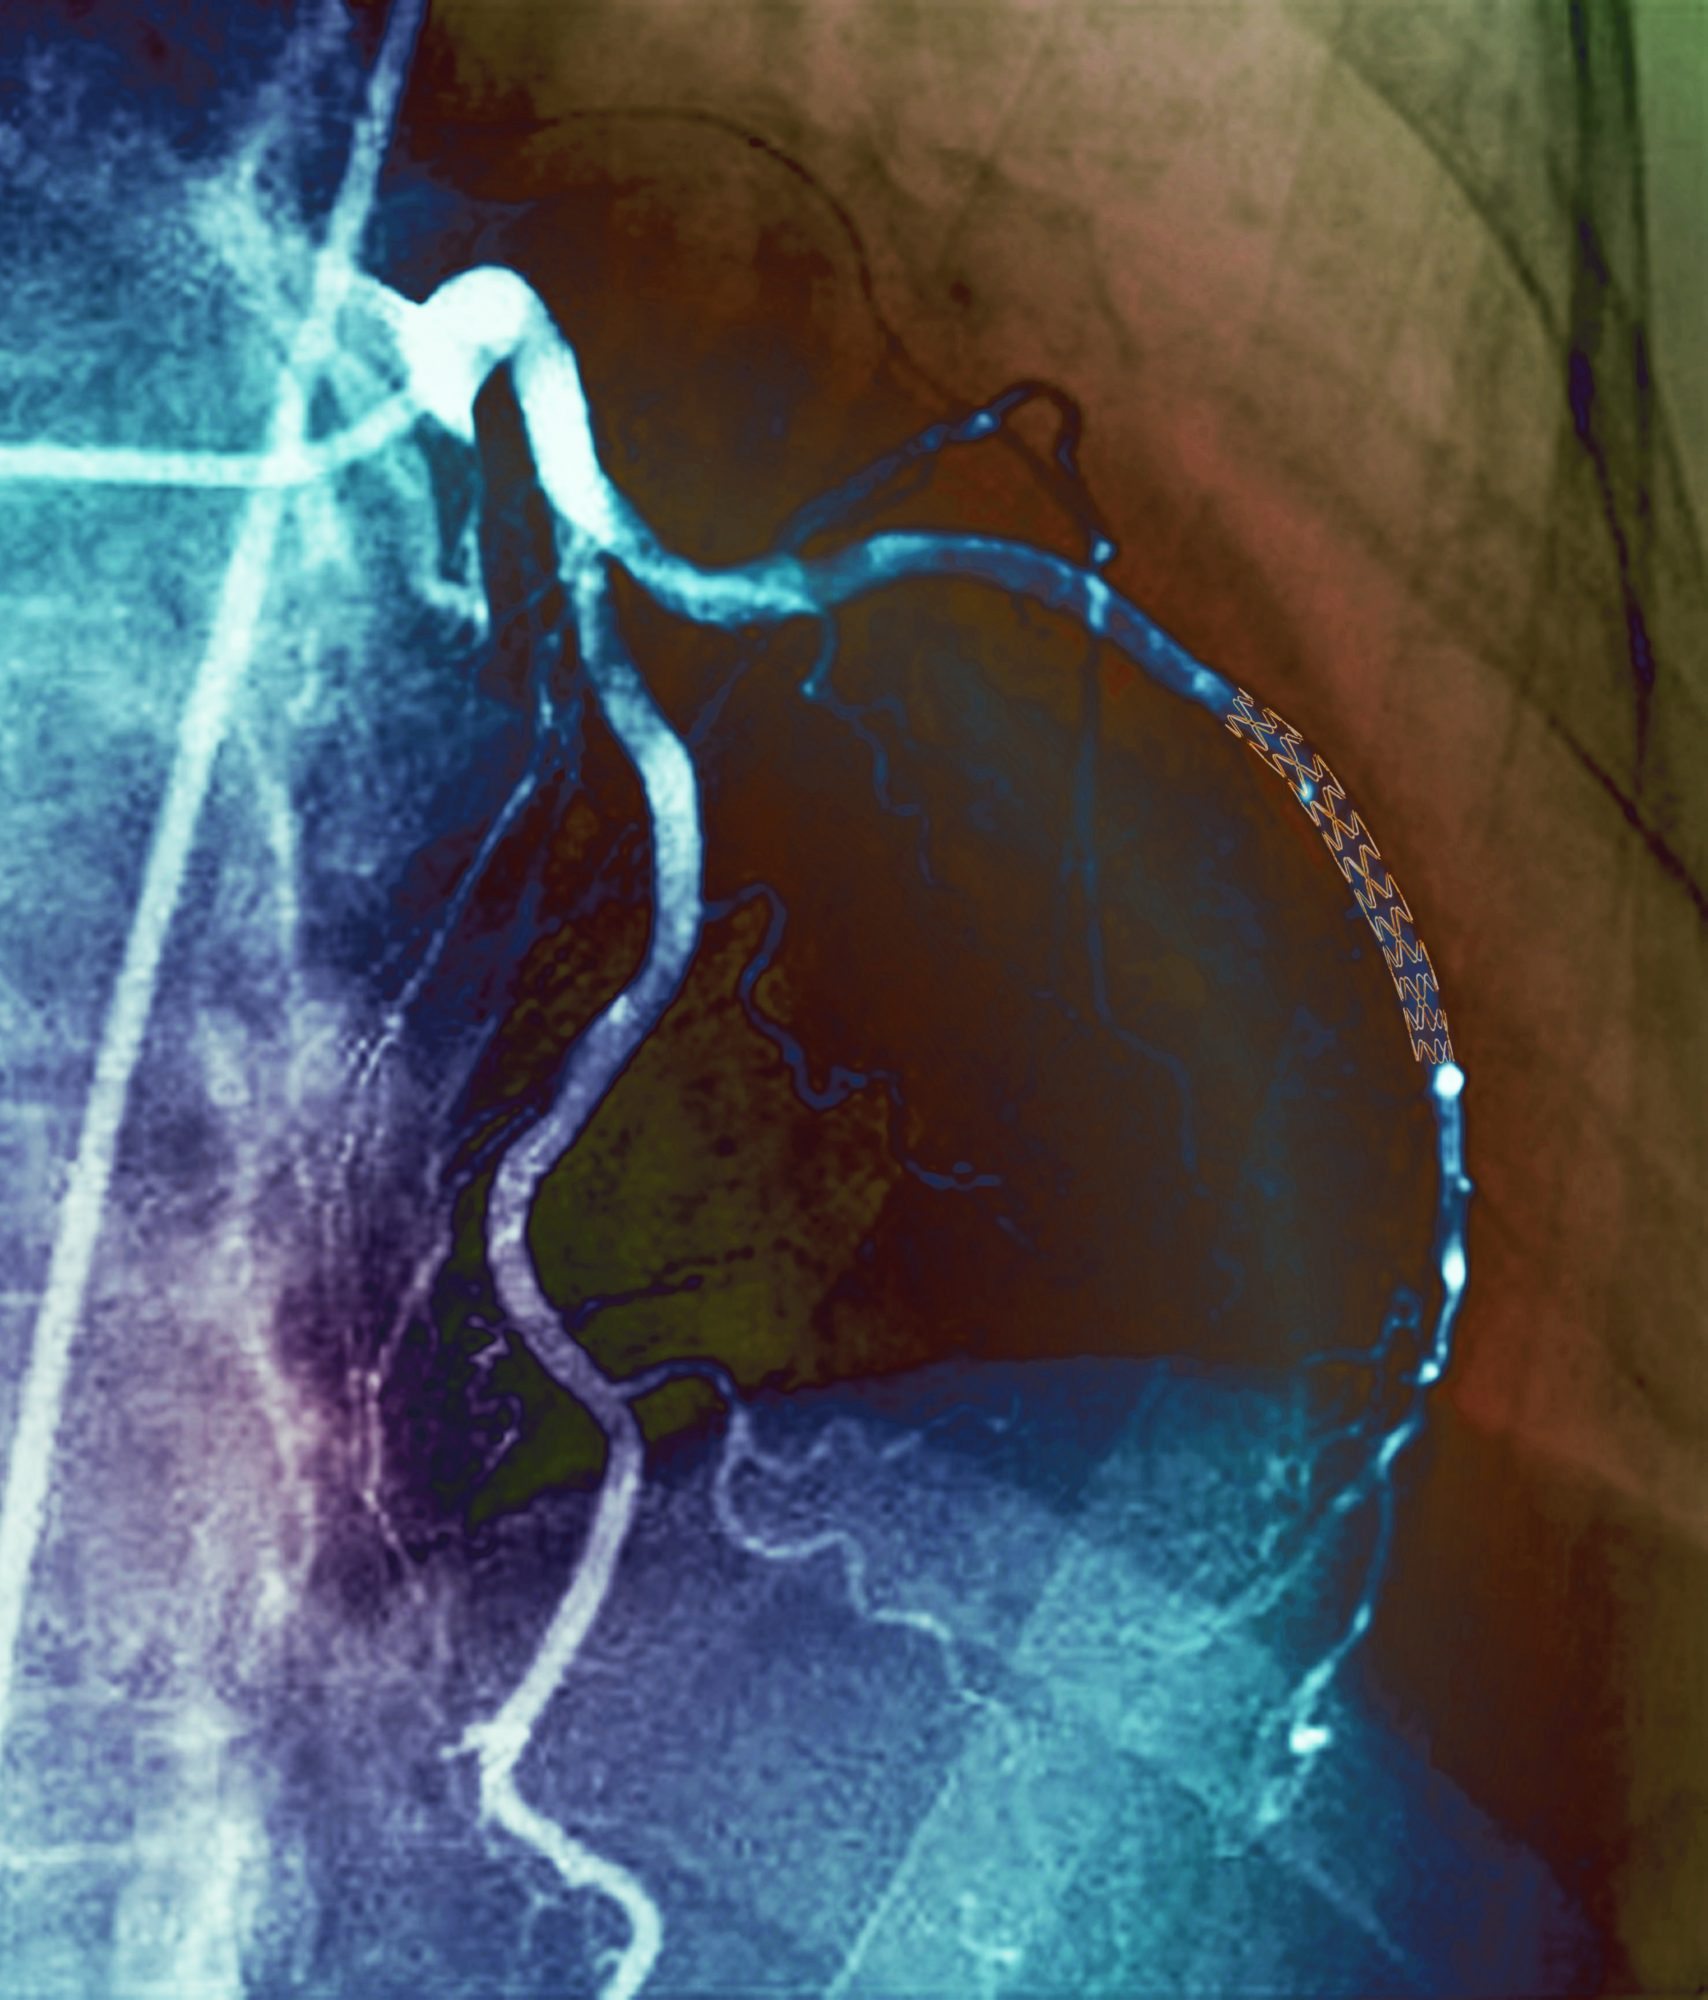 The angiogram